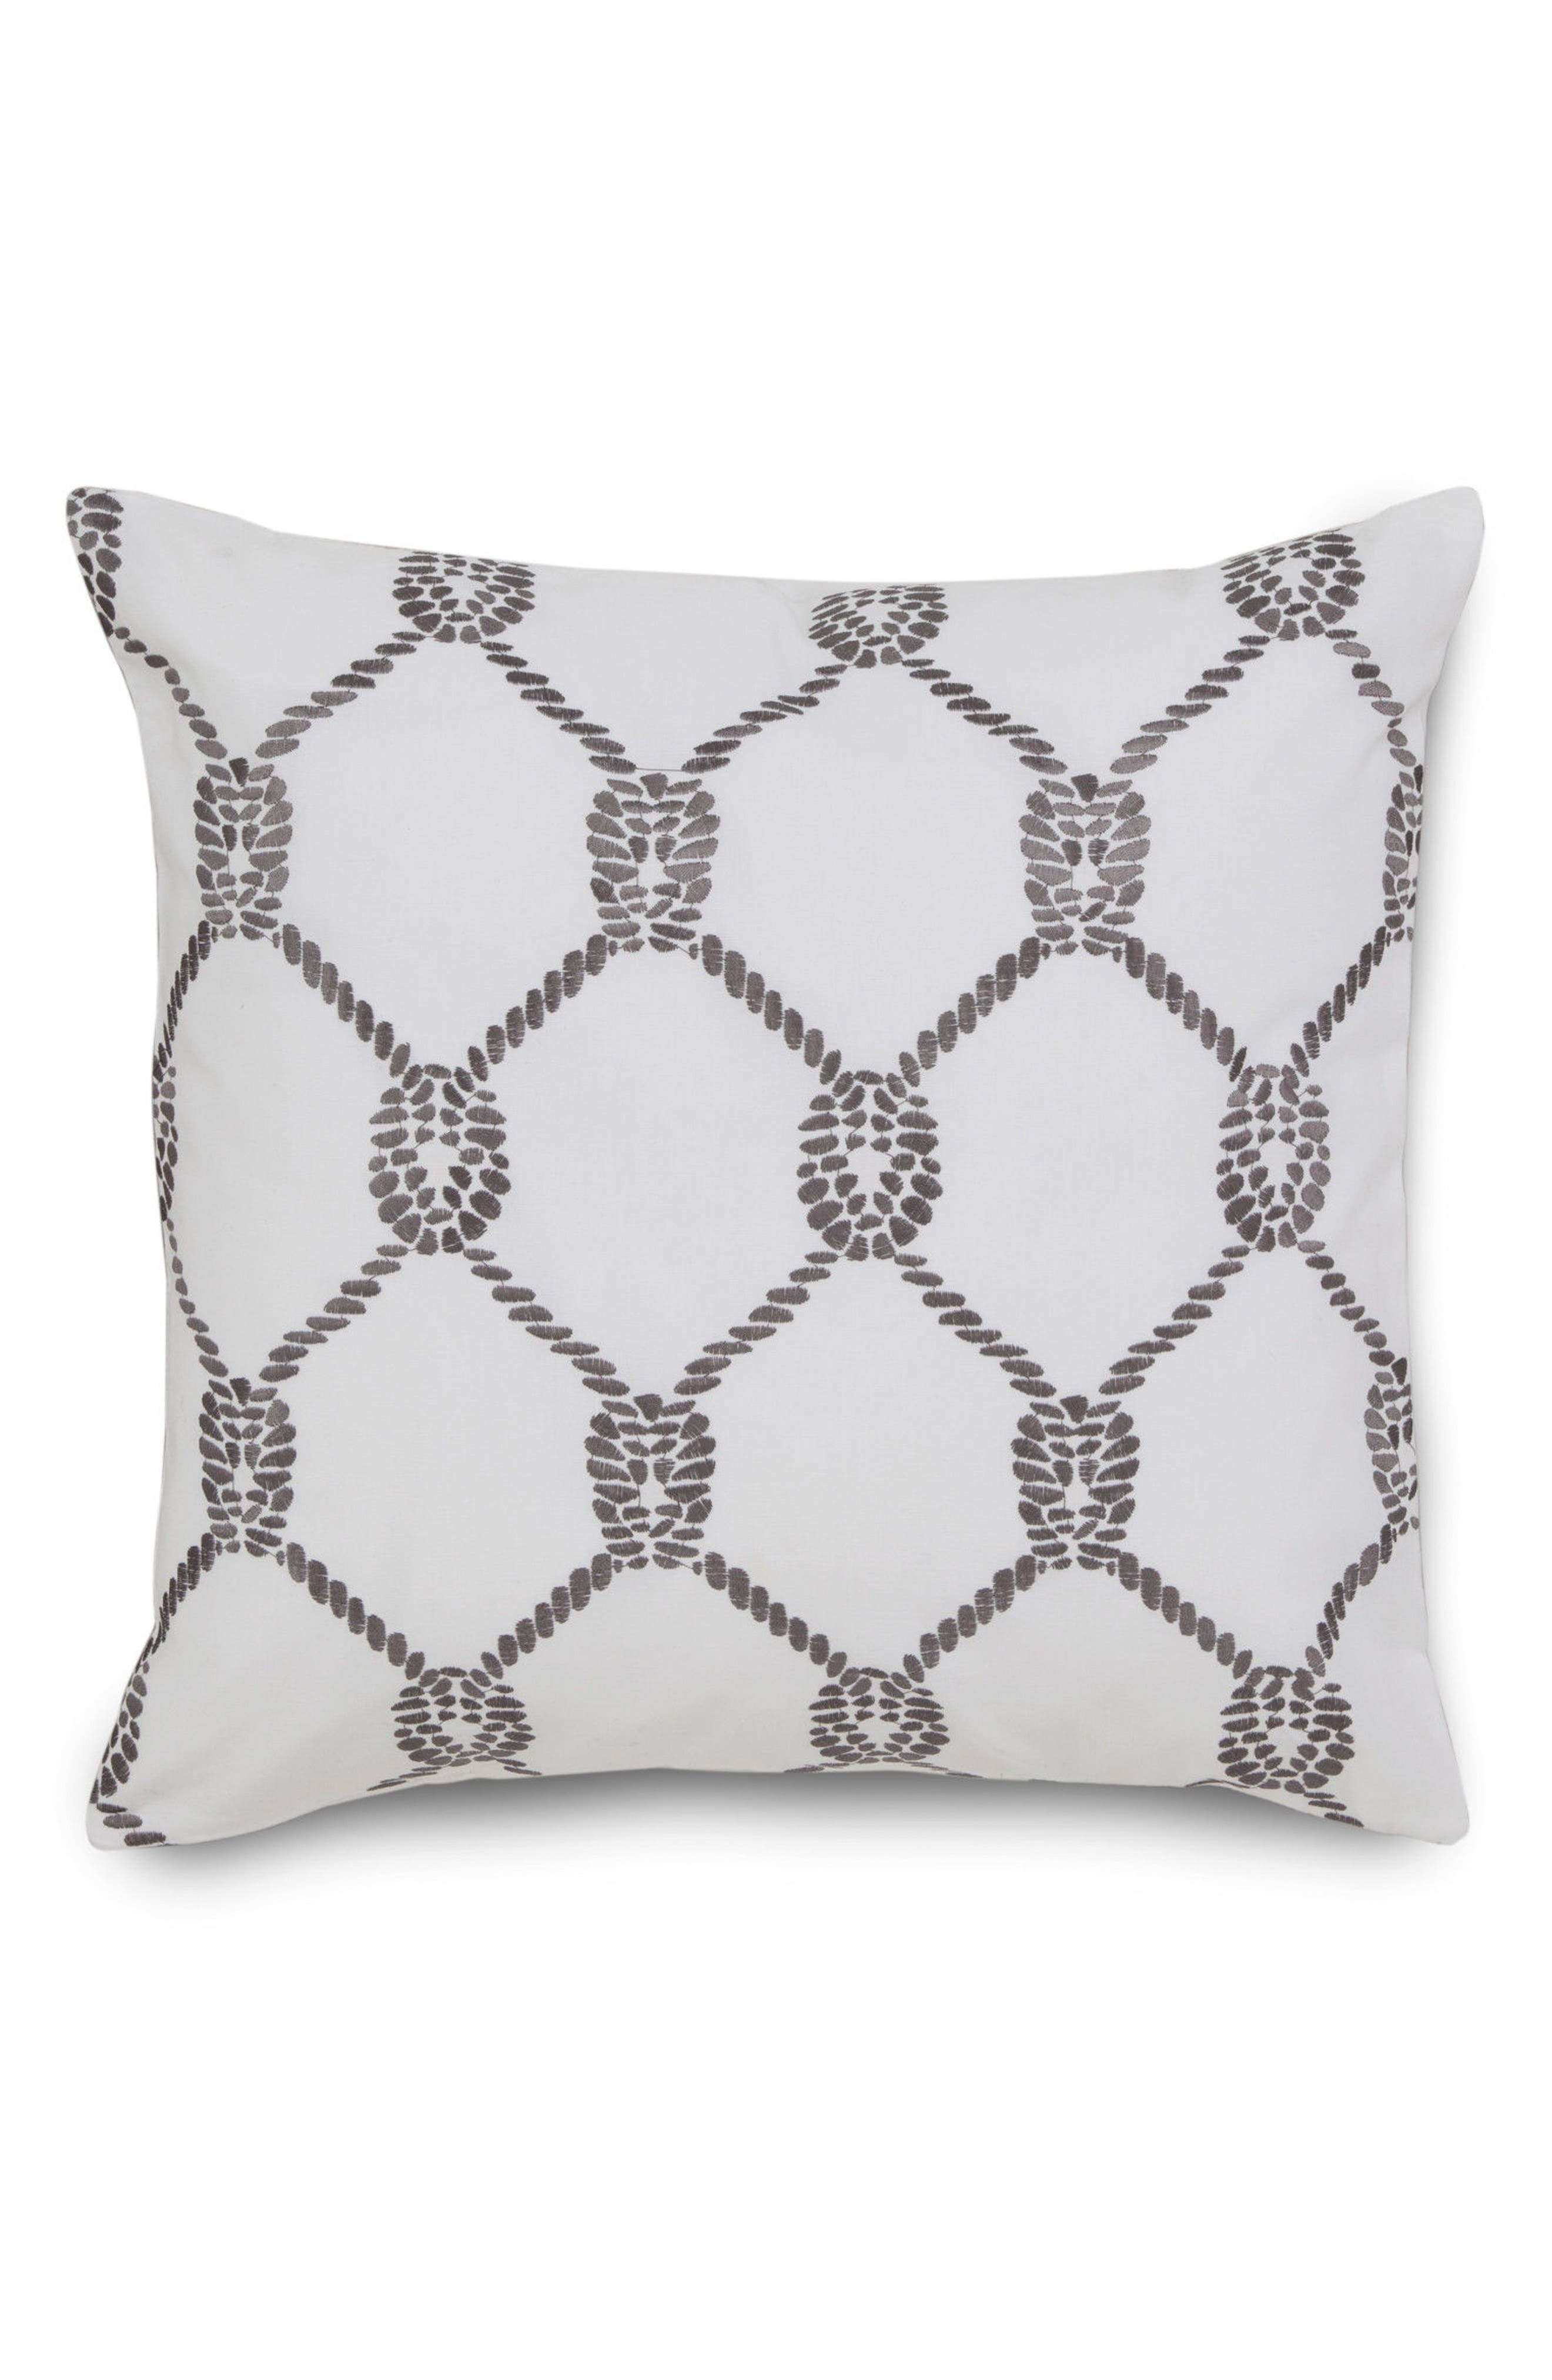 SOUTHERN TIDE Breakwater Embroidered Rope Accent Pillow, Main, color, 020